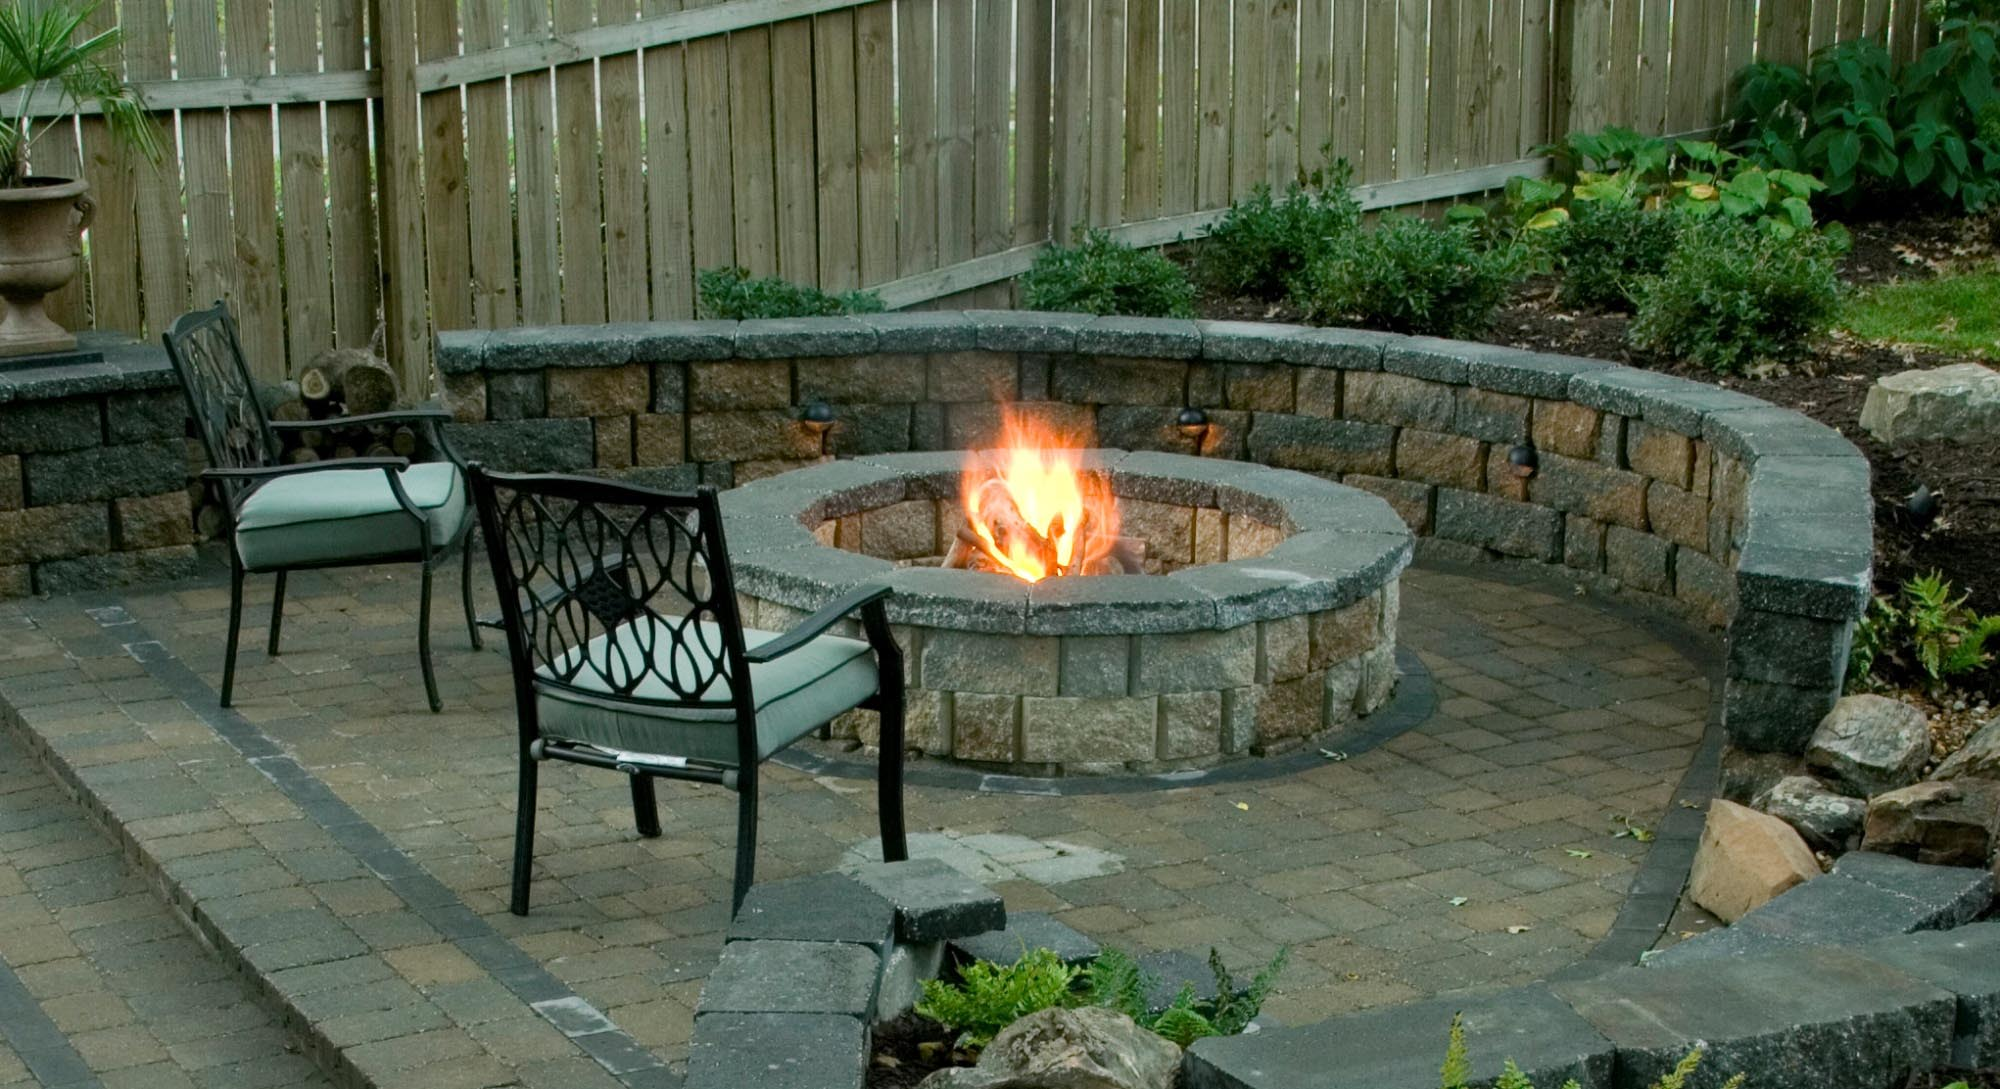 patio designs with fire pit | fire pit design ideas - Patio Designs With Fire Pit Pictures